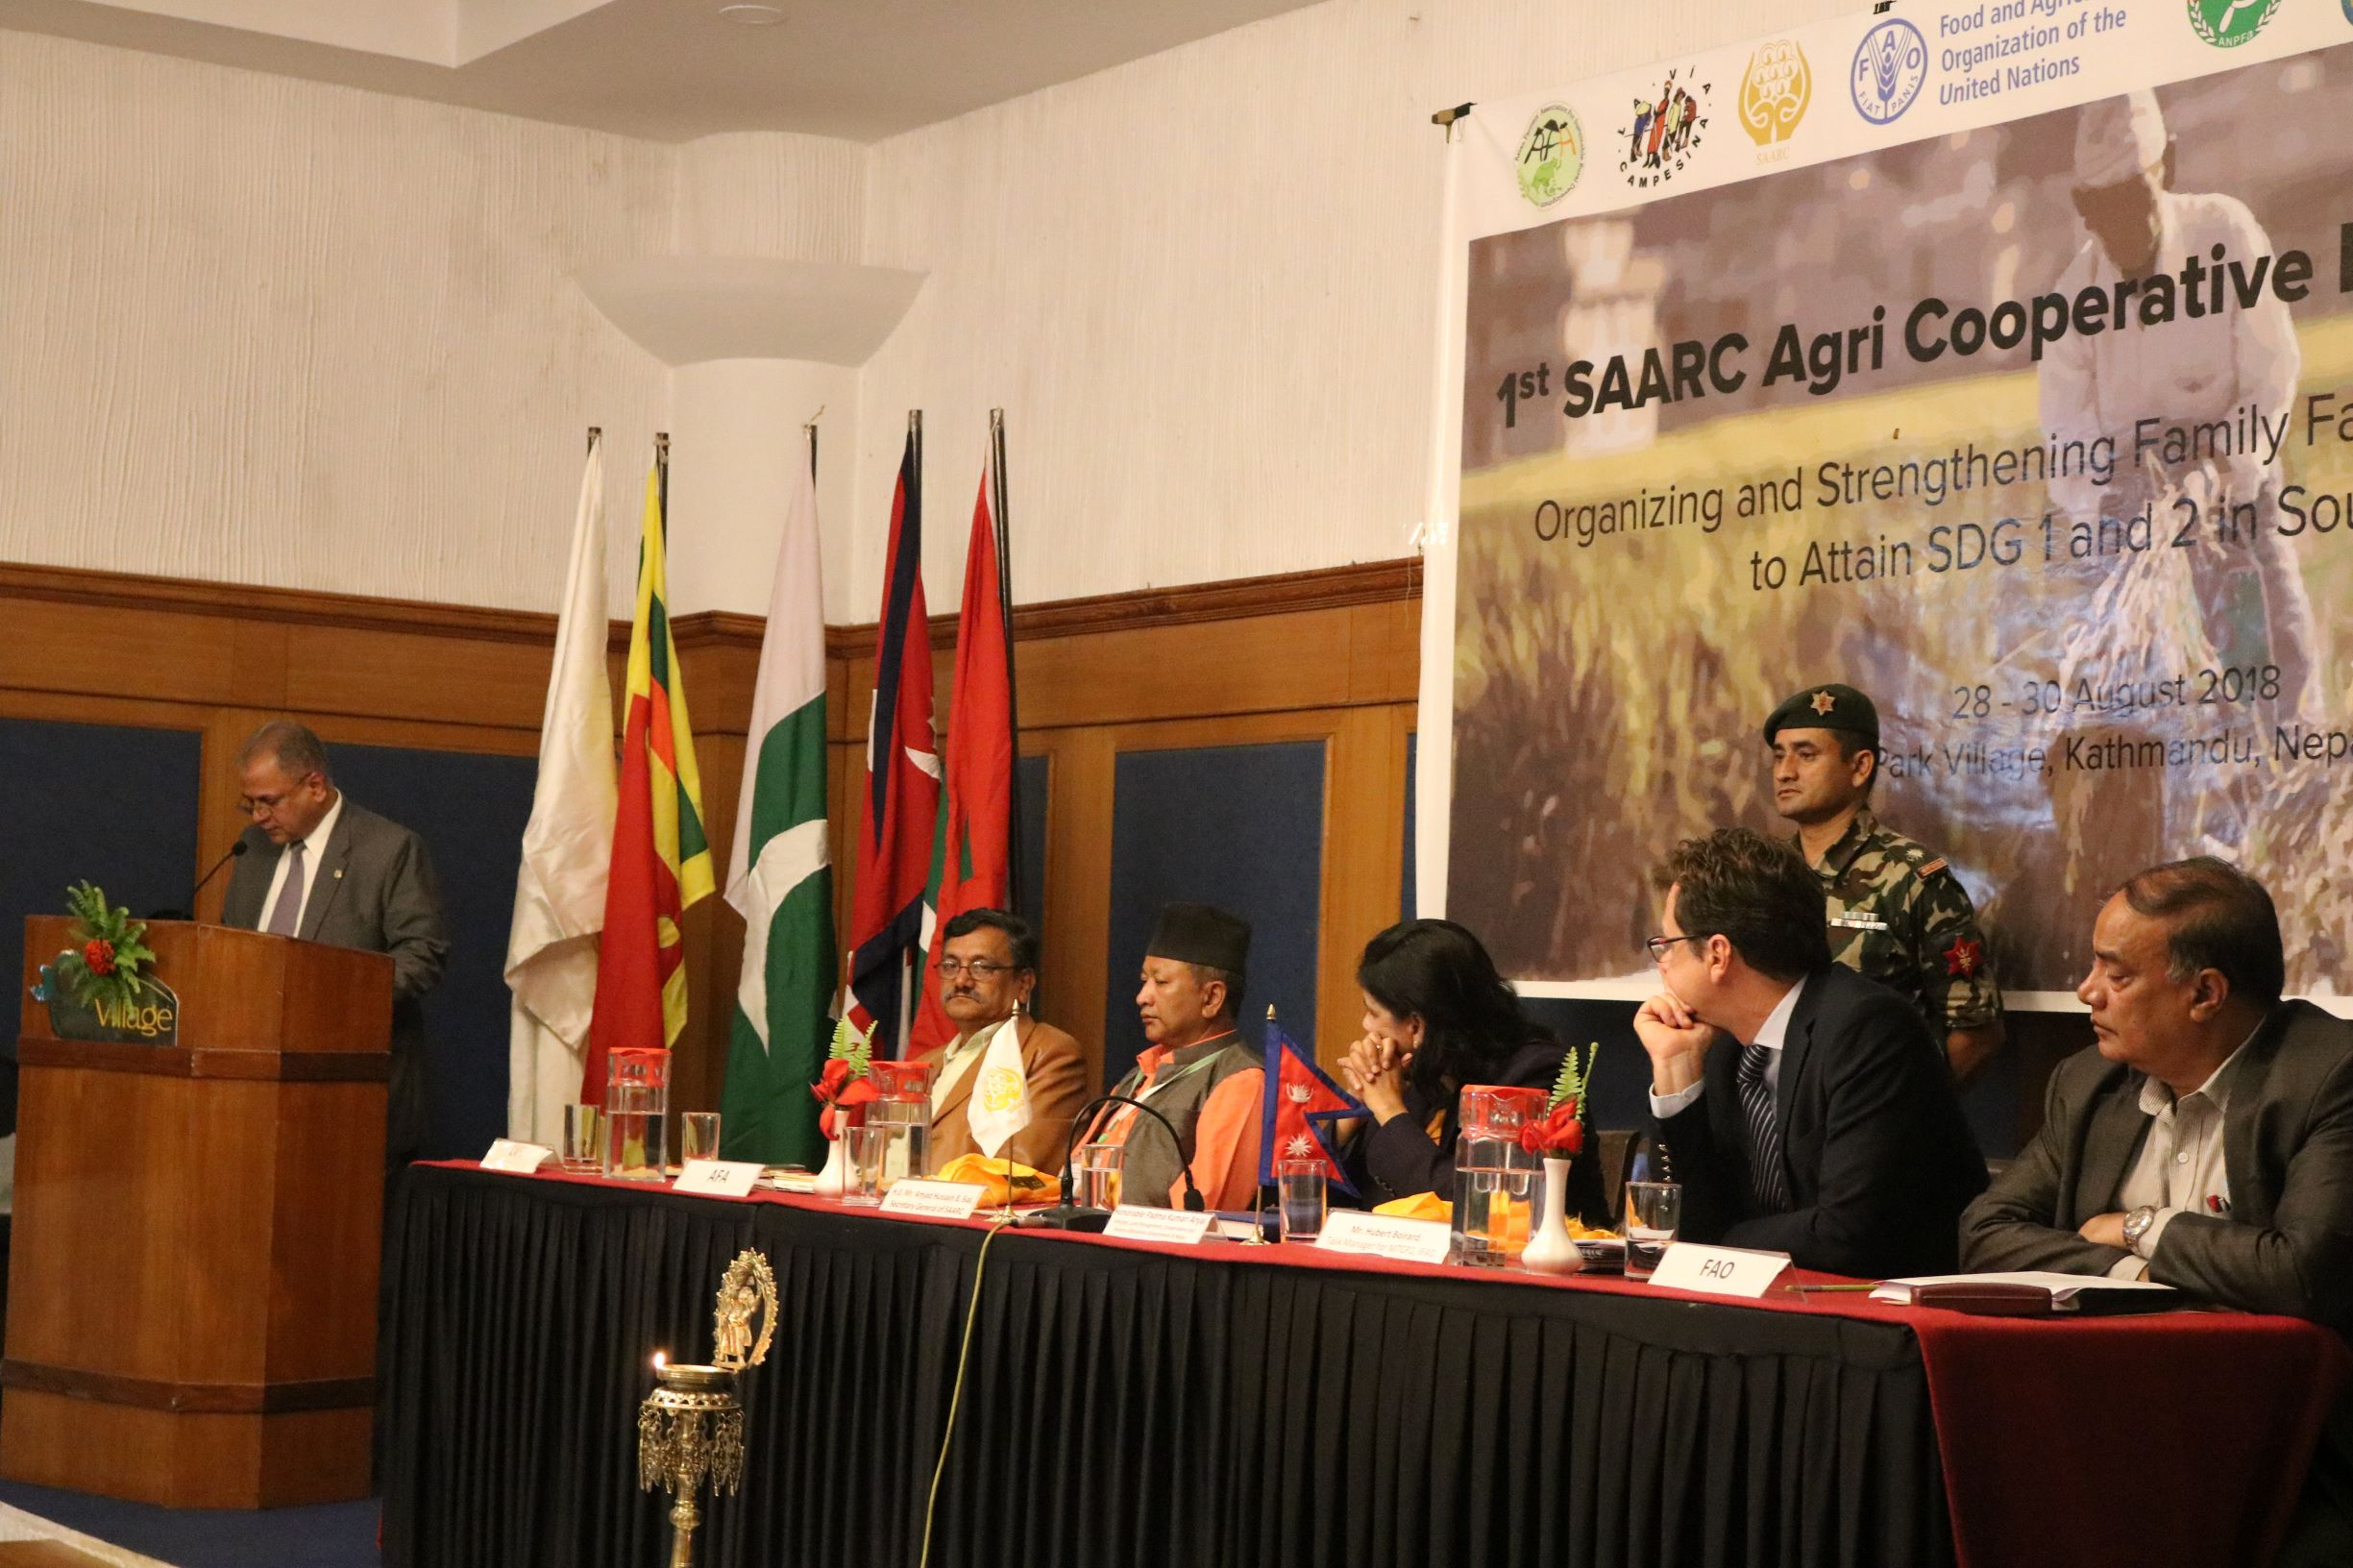 First SAARC Agri Cooperative Business Forum